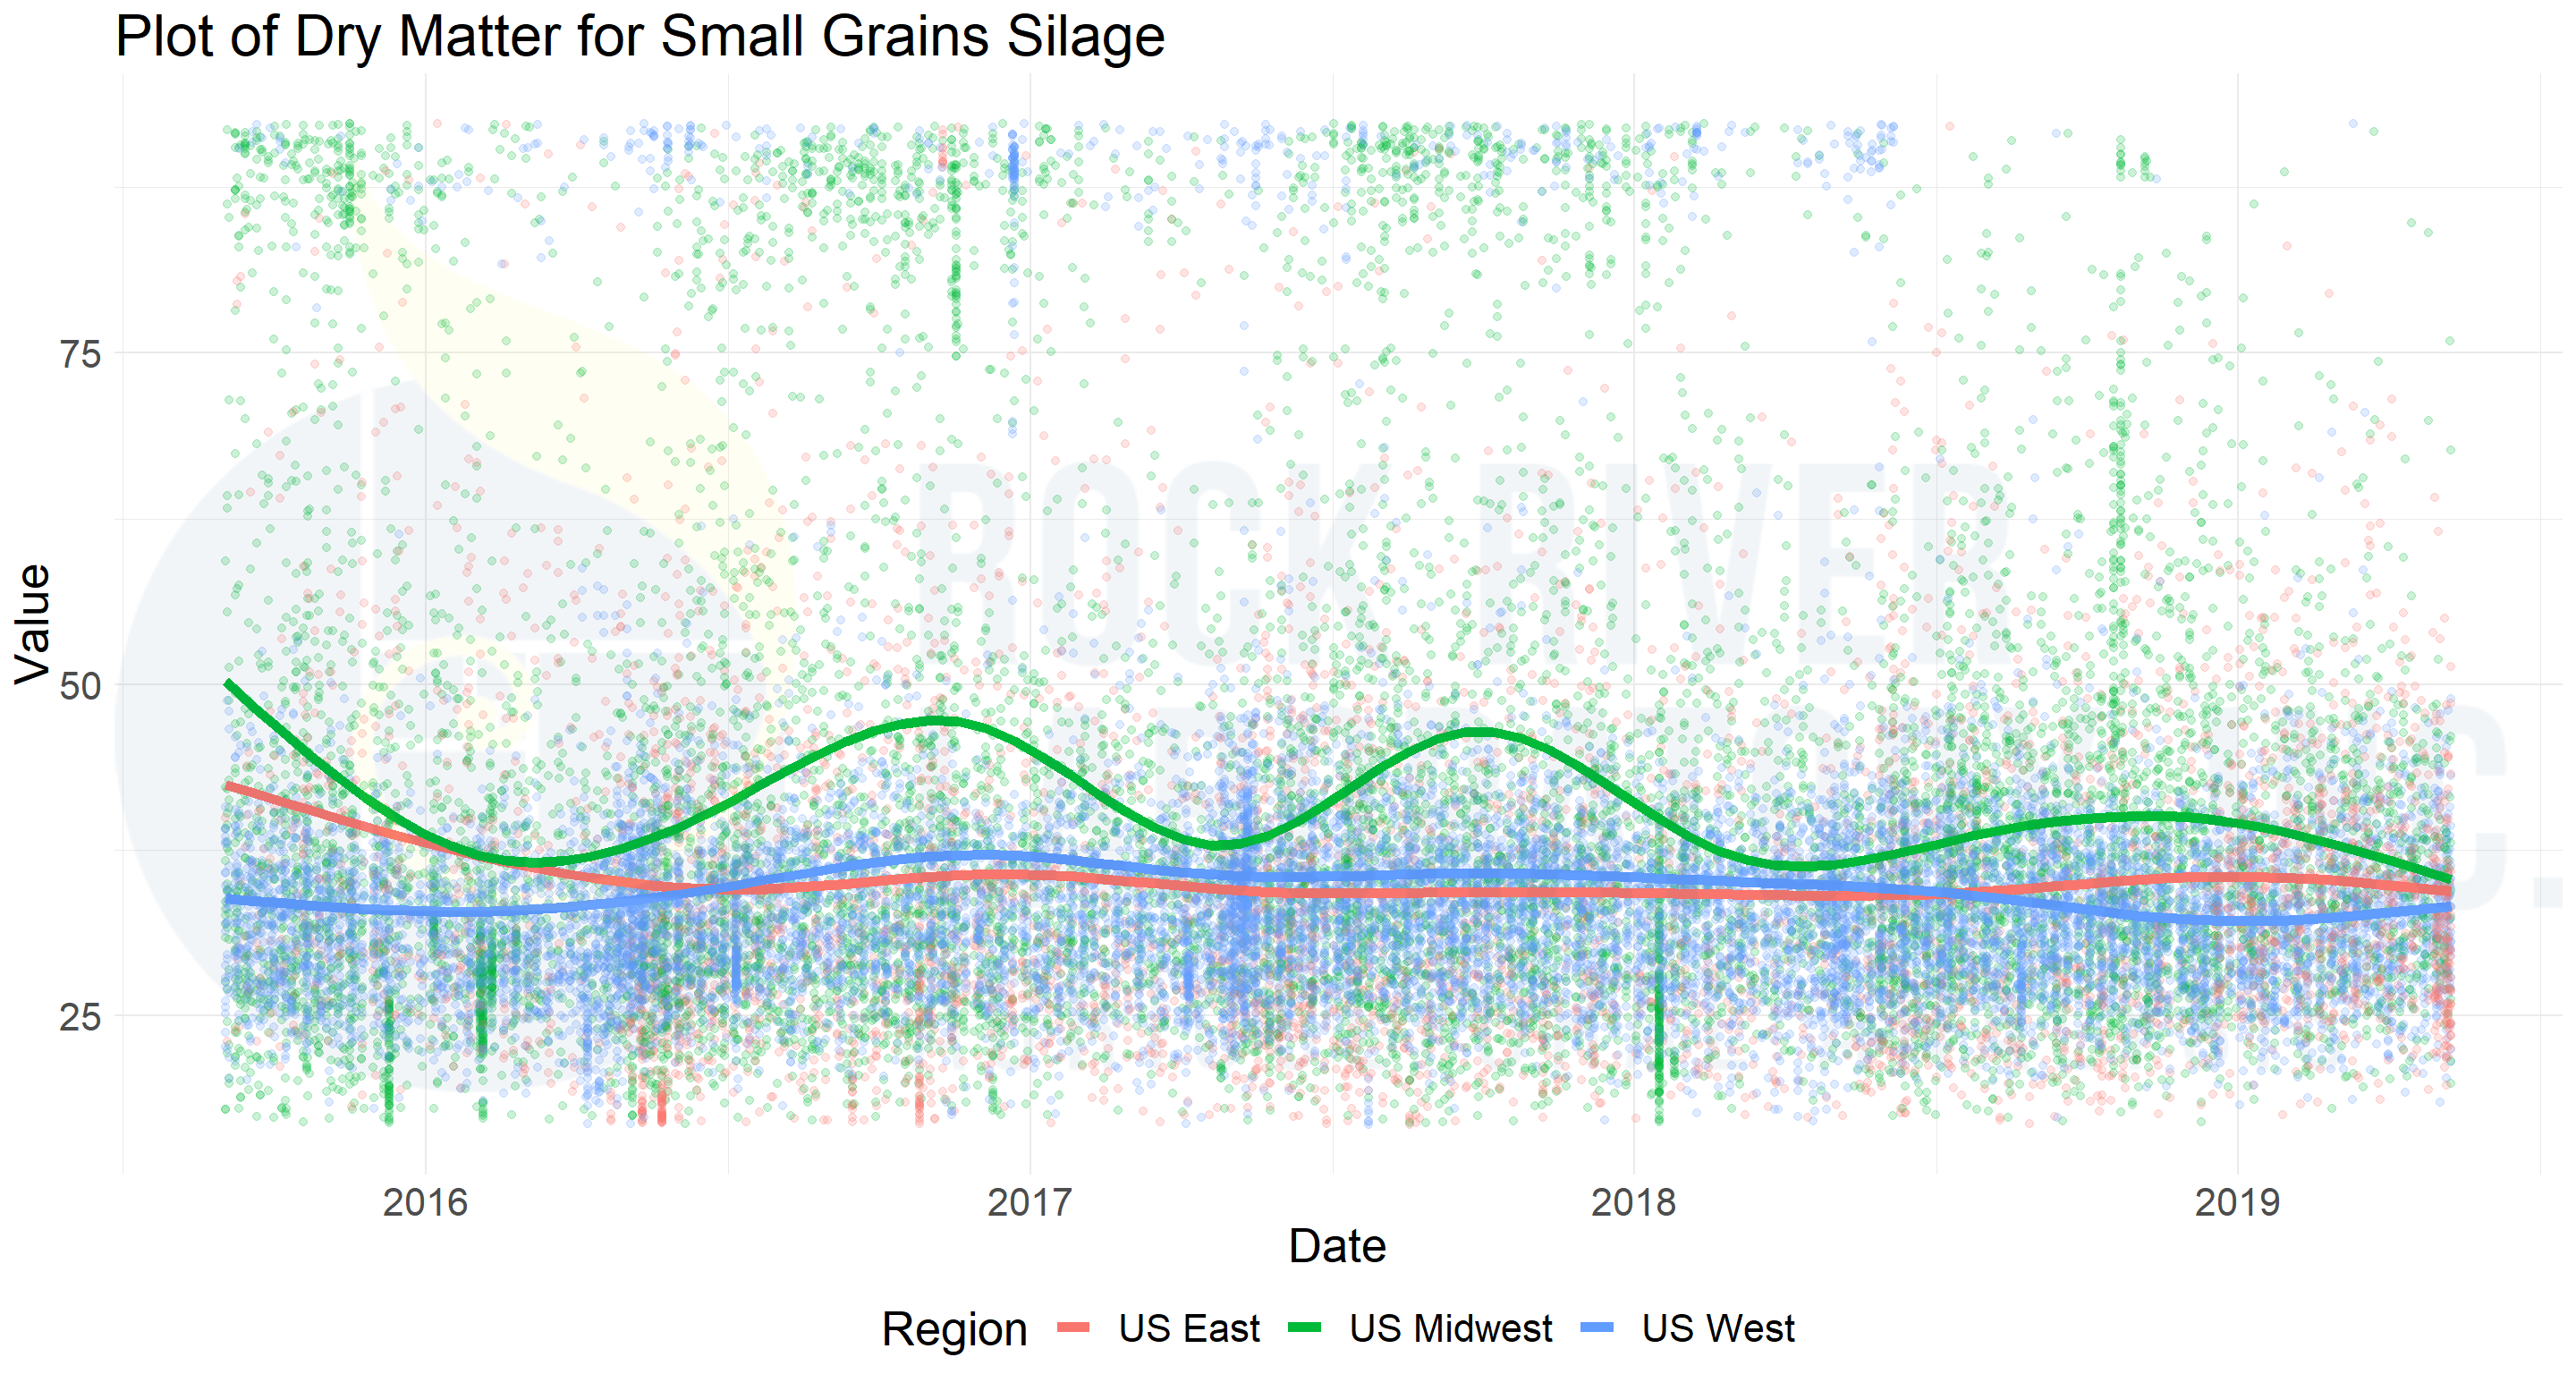 Figure 1_Plot of Dry Matter for Small Grains Silage_Rock River Laboratory database